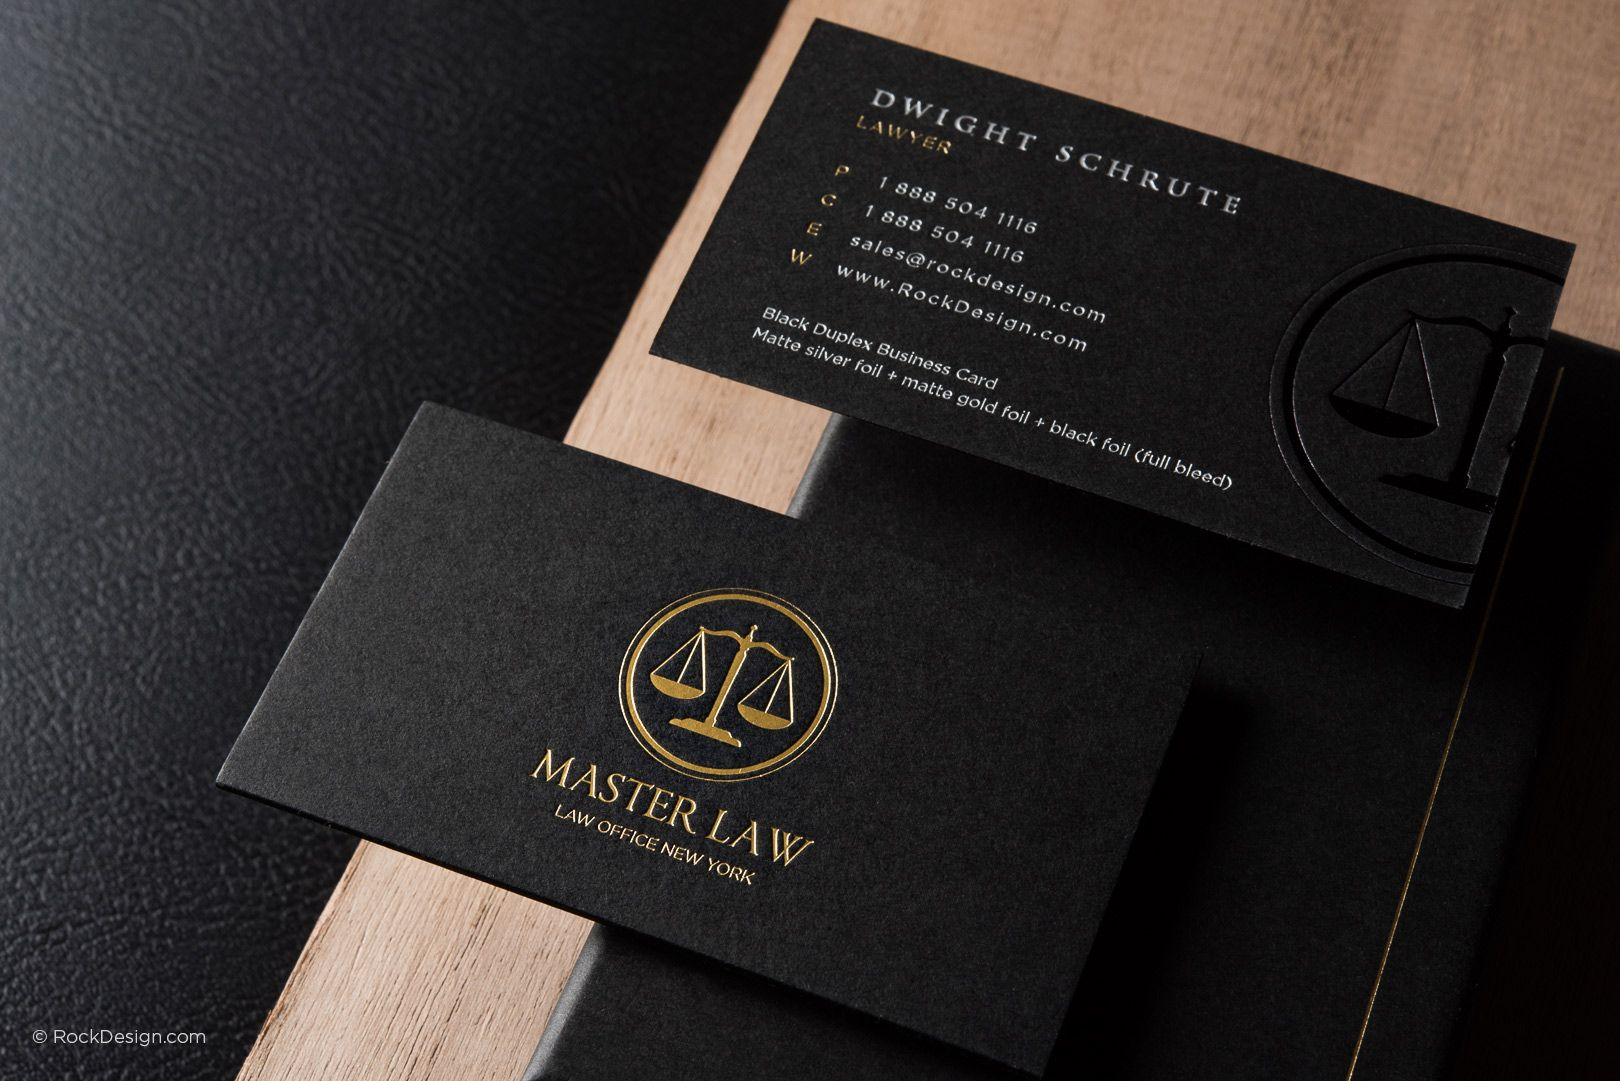 Classic modern black duplex attorney business card template master use our free luxury templates to create your visit cards today buy gold and black business cards online today to expand your law business reheart